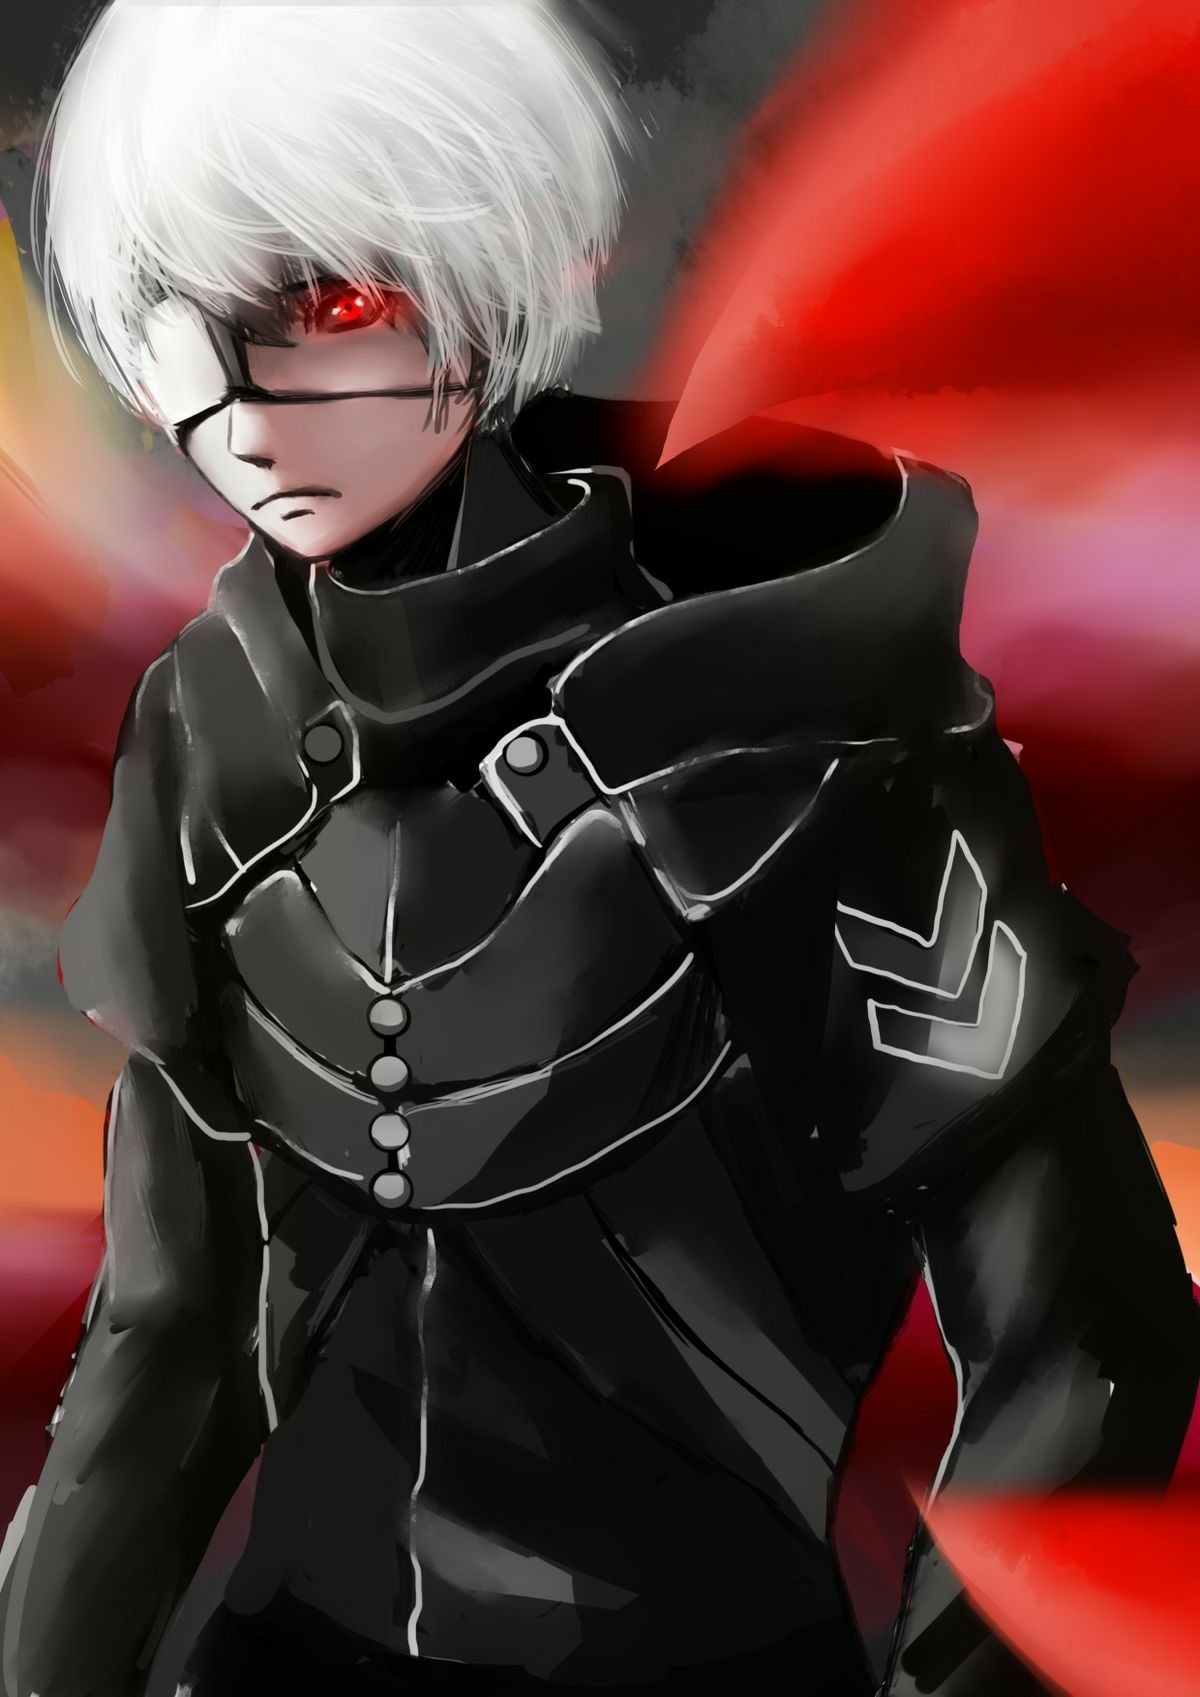 Pin by Tiegearian on Tokyo ghoul manga (With images